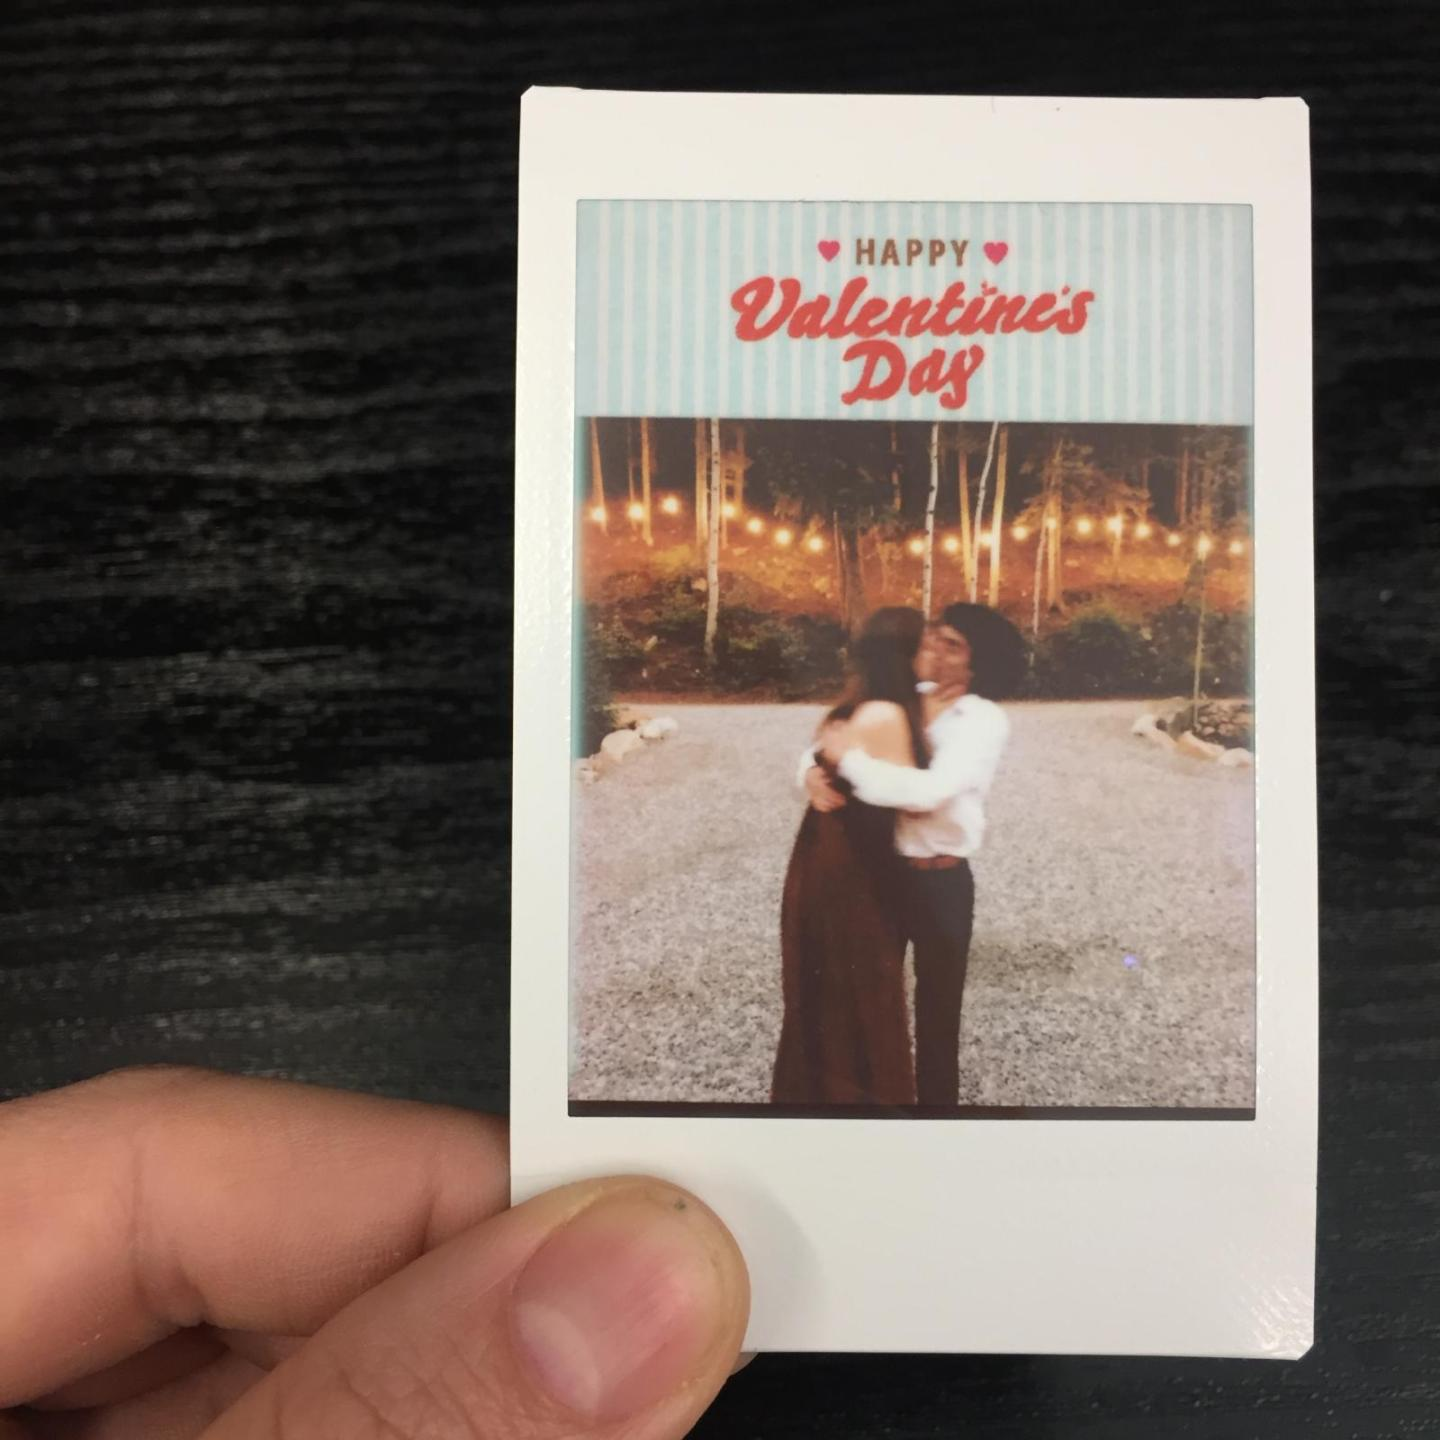 3 Reasons I chose a Fujifilm Instax SP-2 Printer